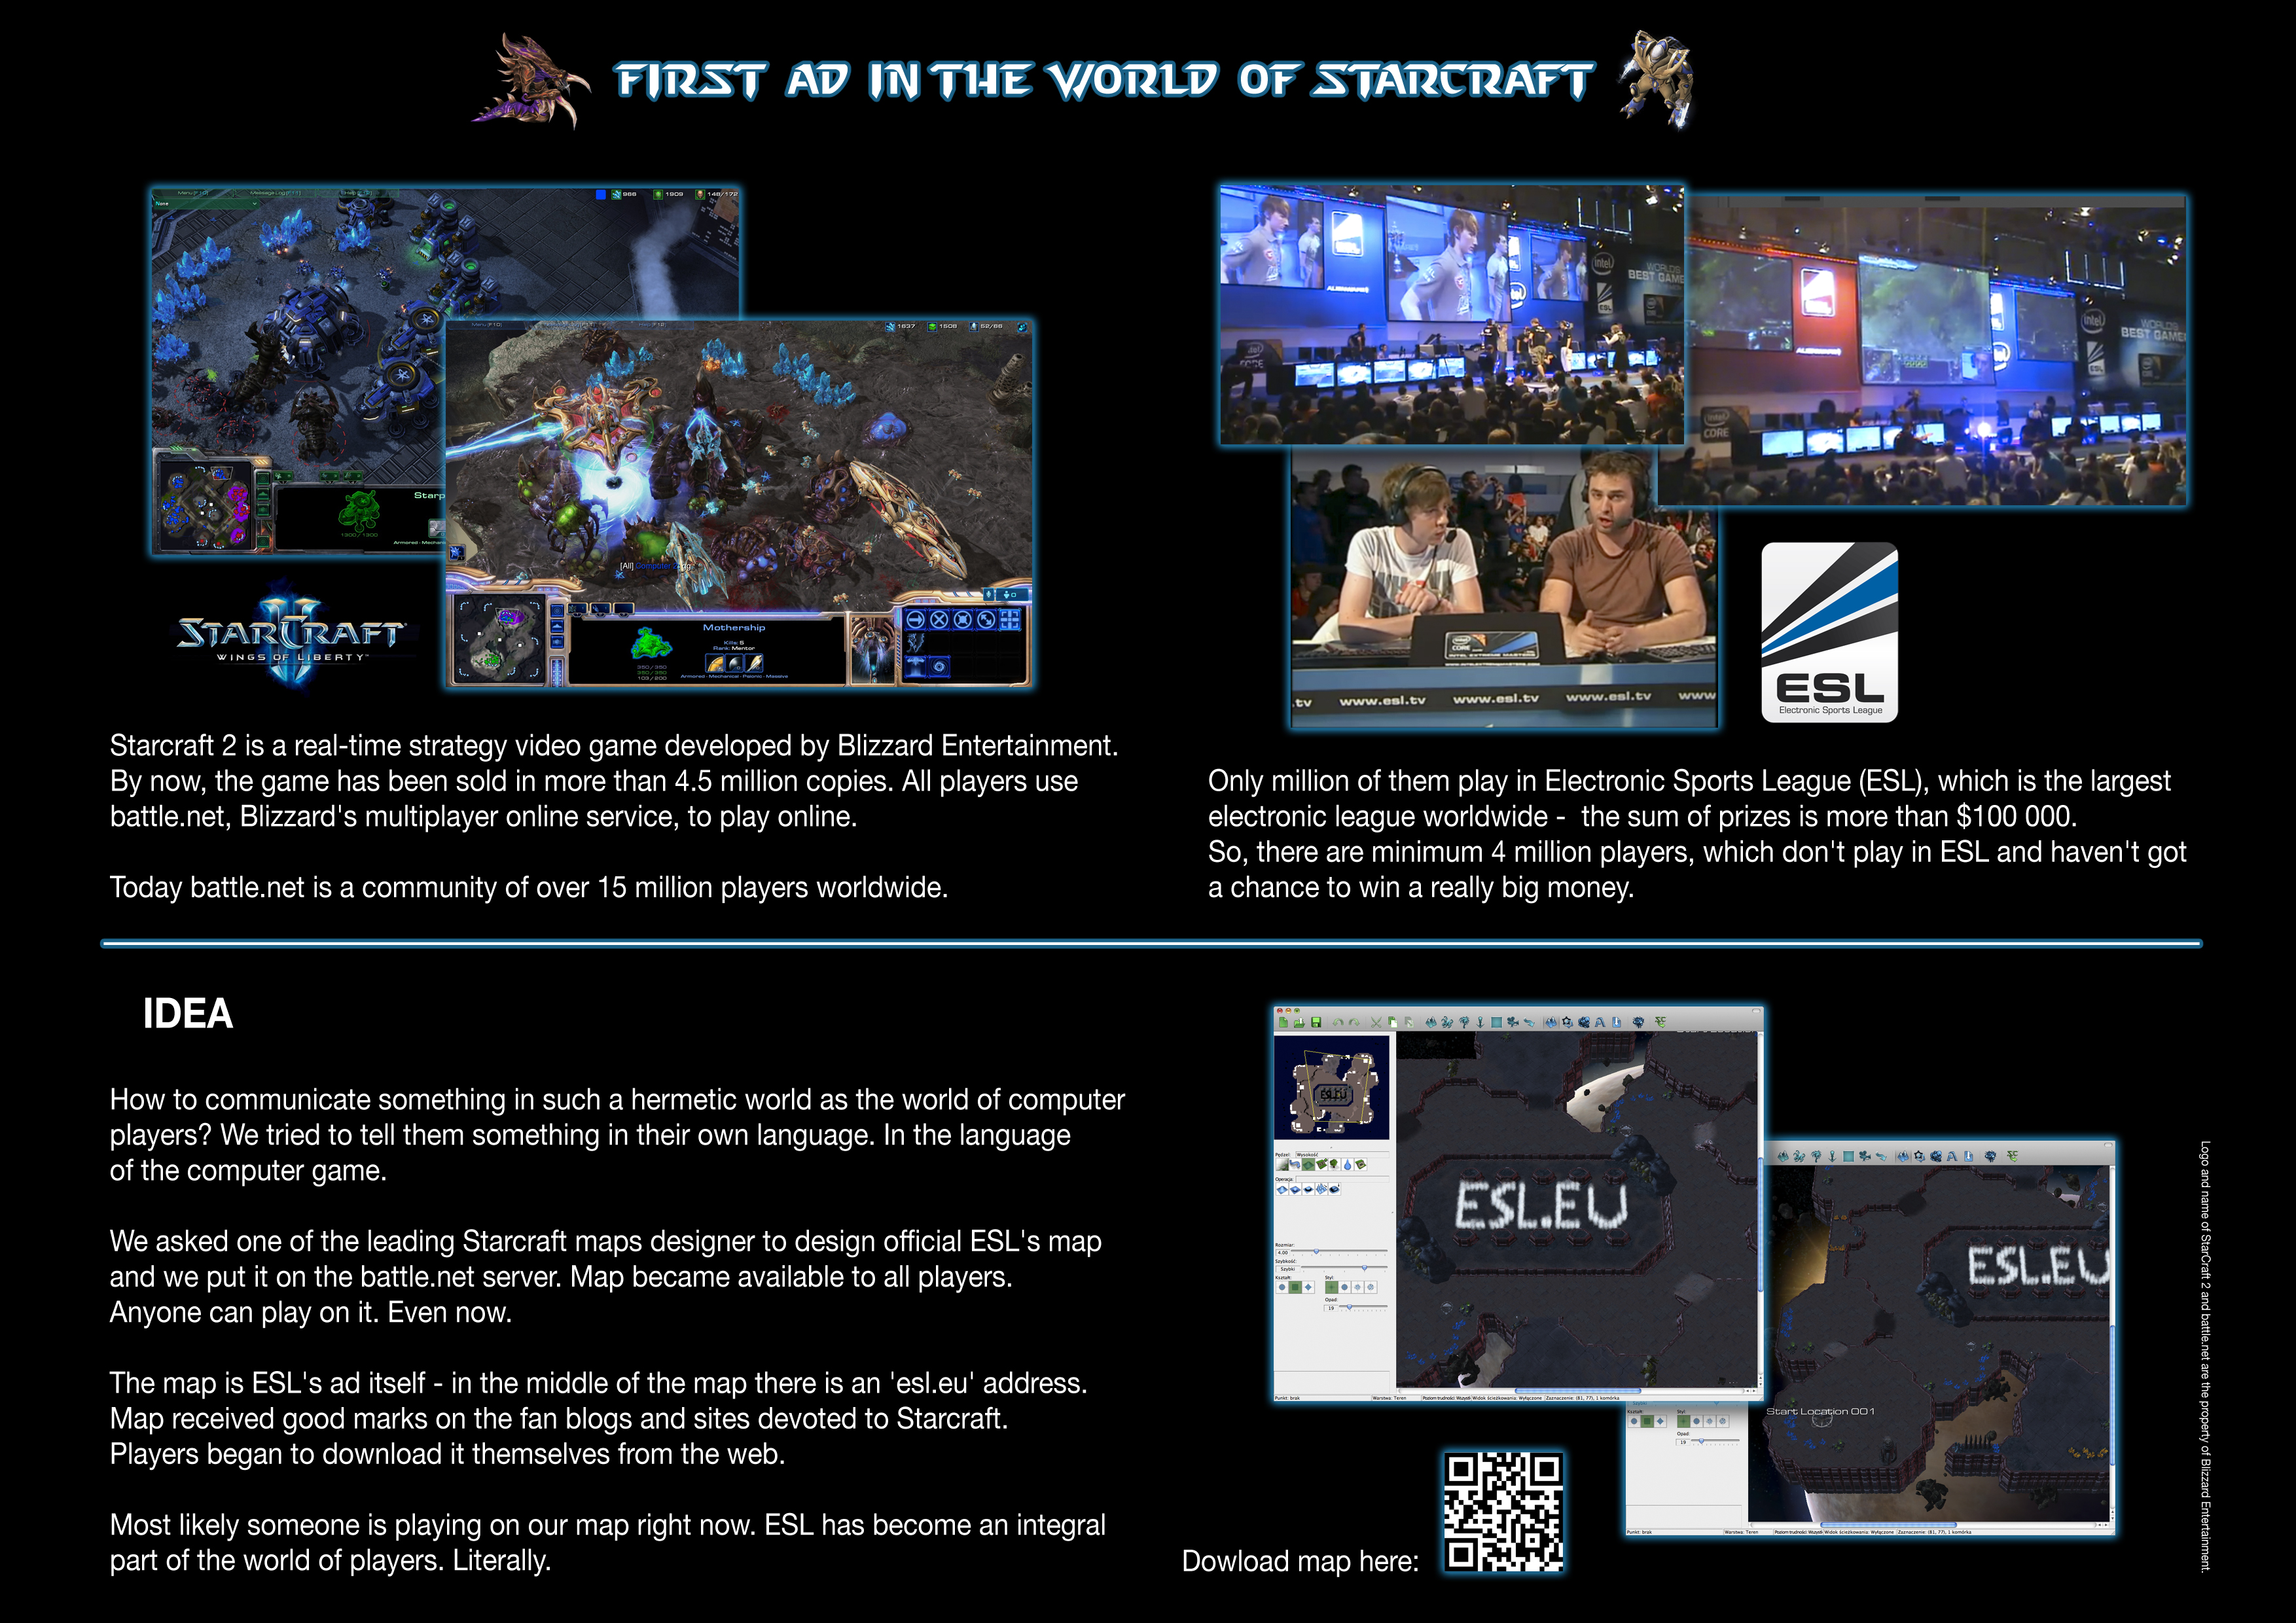 First ad in the world of Starcraft